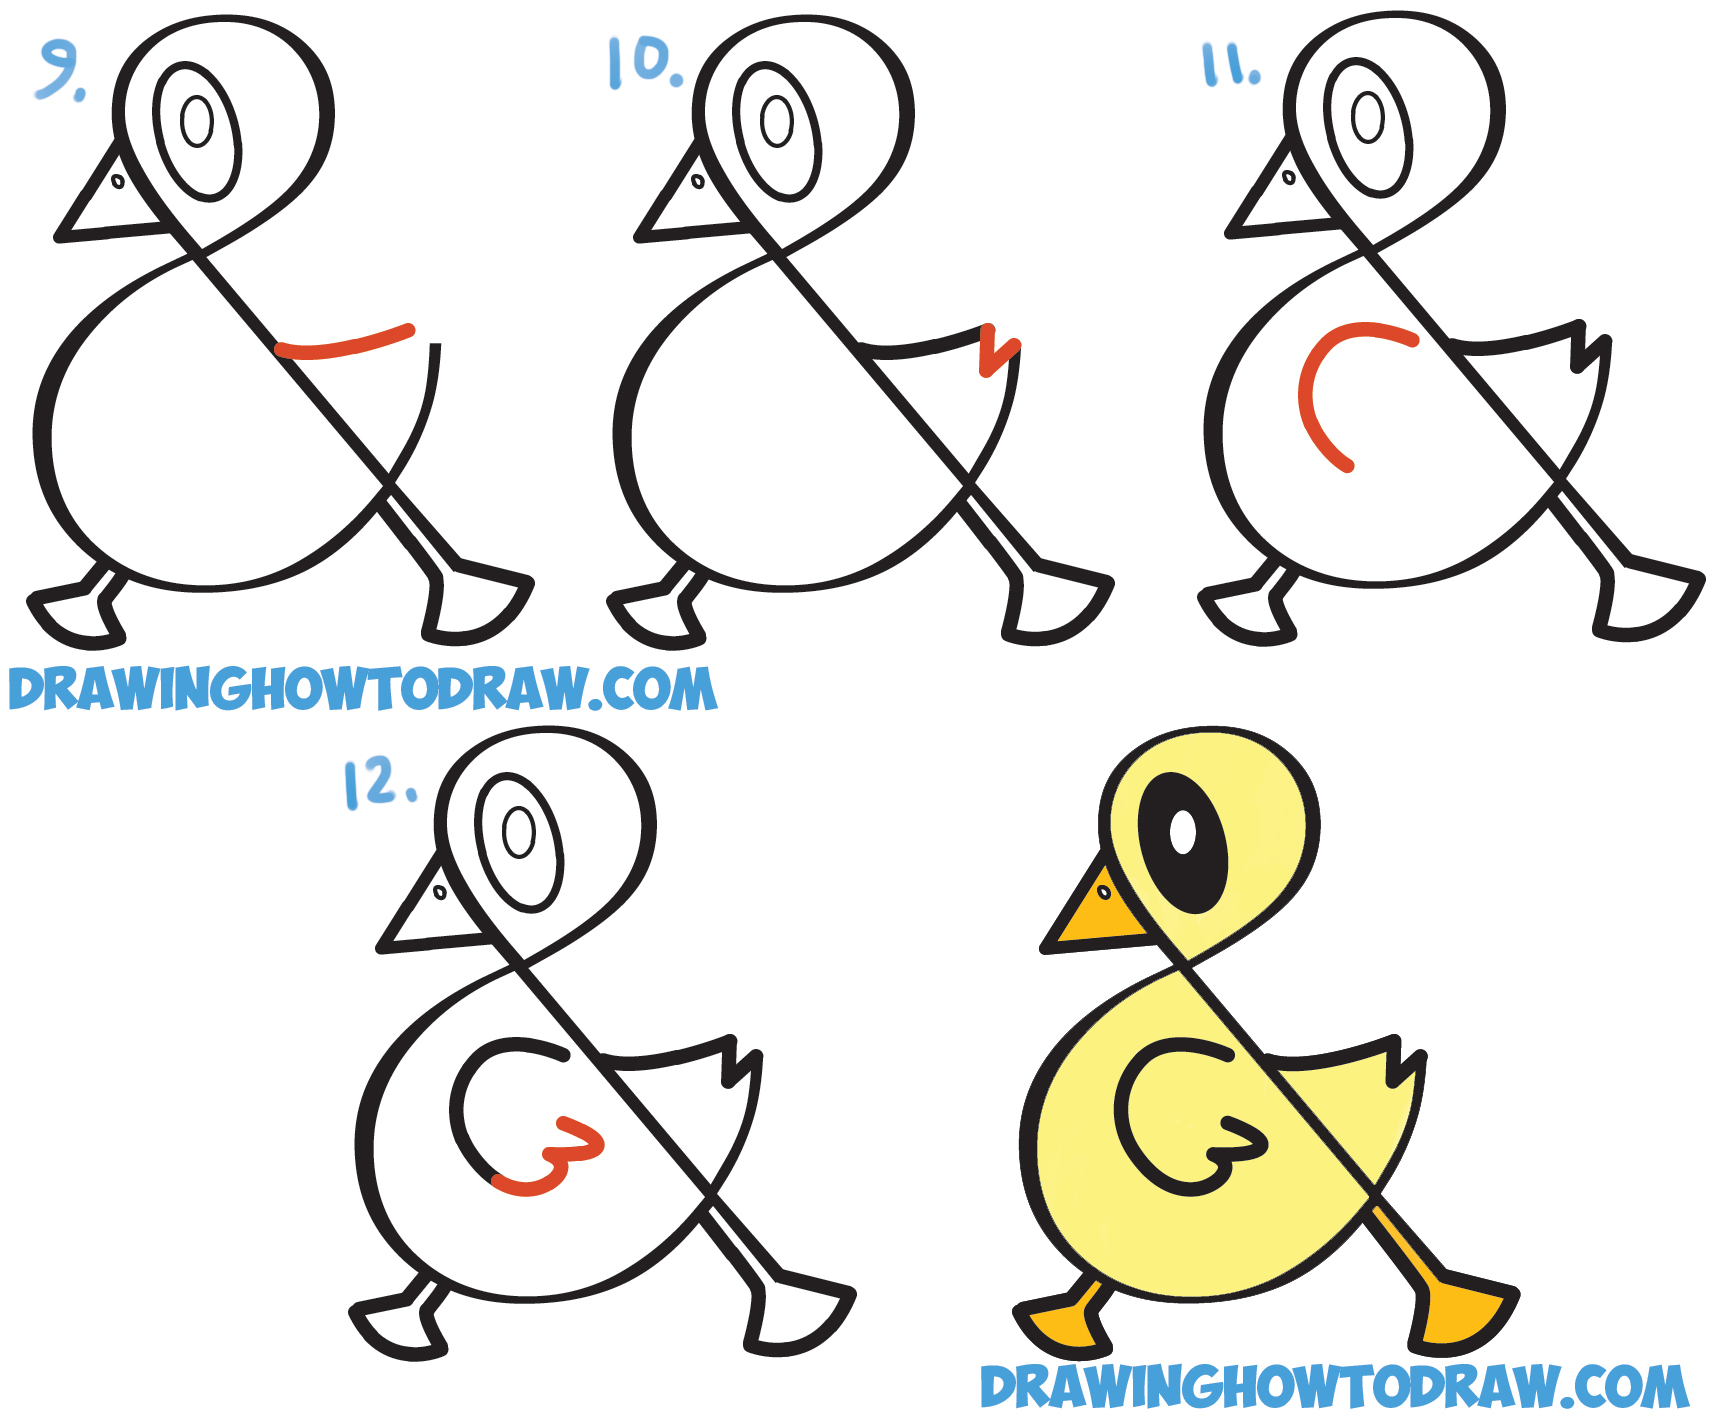 Learn How to Draw a Cute Cartoon Duck from Ampersand Symbol, Letters + Numbers - Simple Steps Drawing Lesson for Children and Beginners